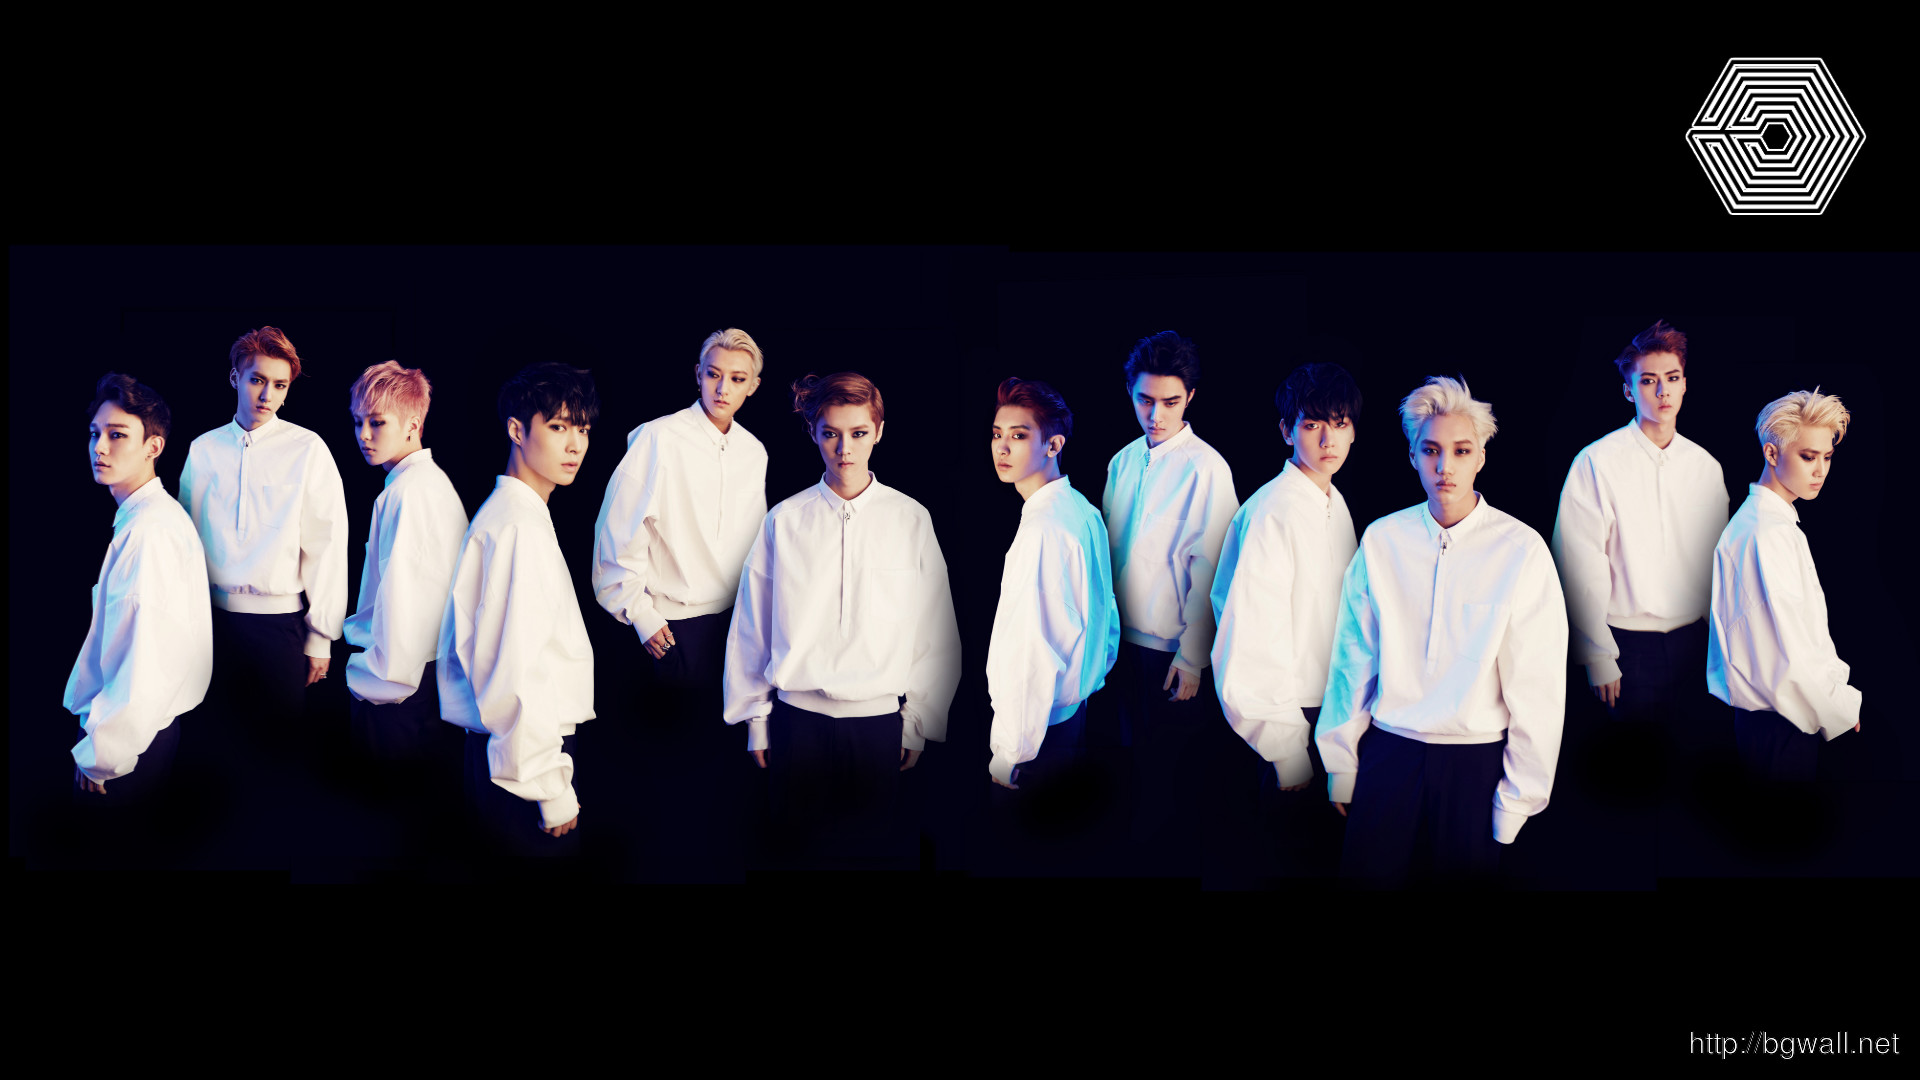 exo wallpaper hd (82+ images)